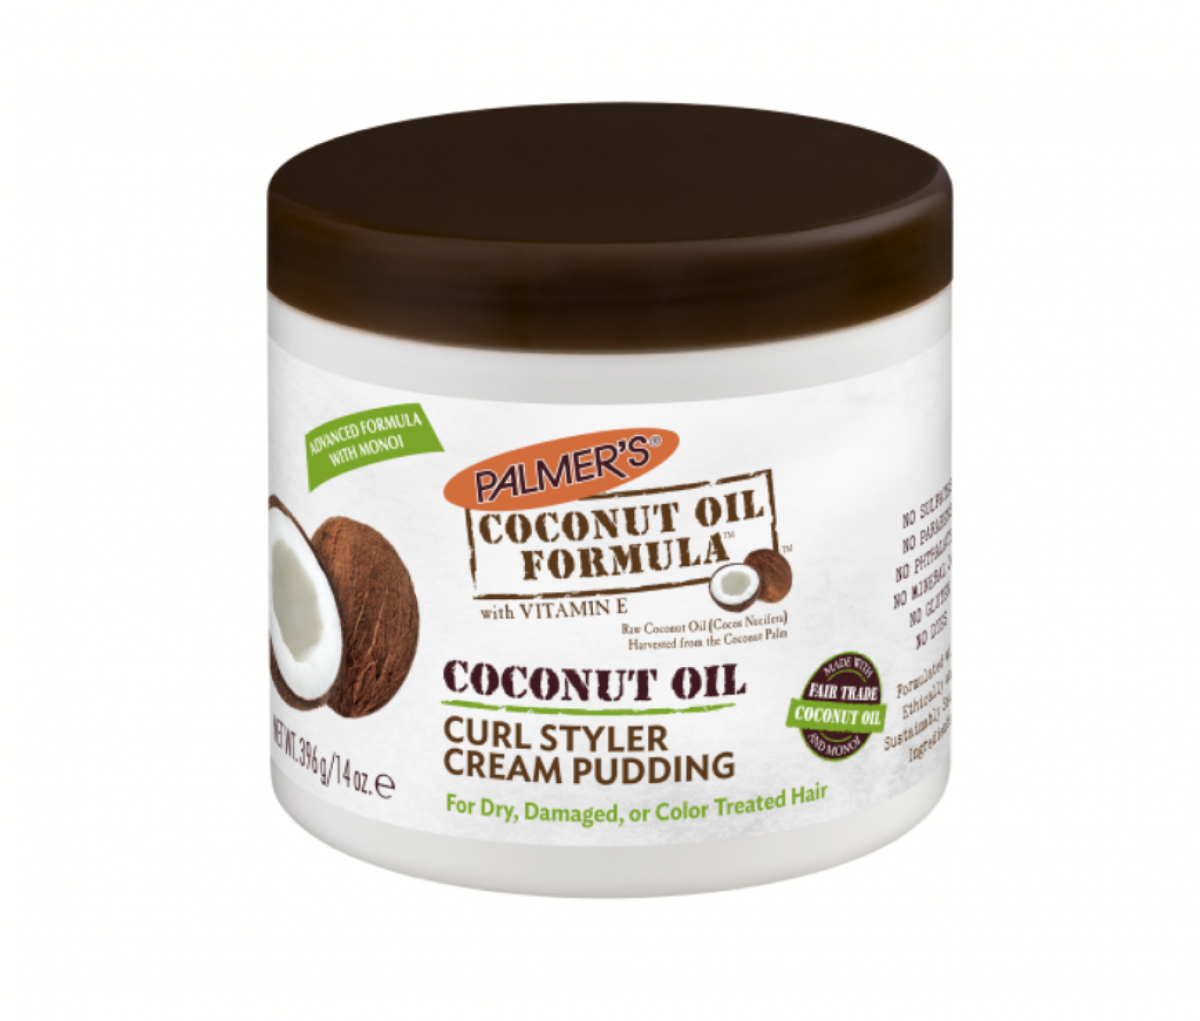 Palmers coconut oil formula hair pudding